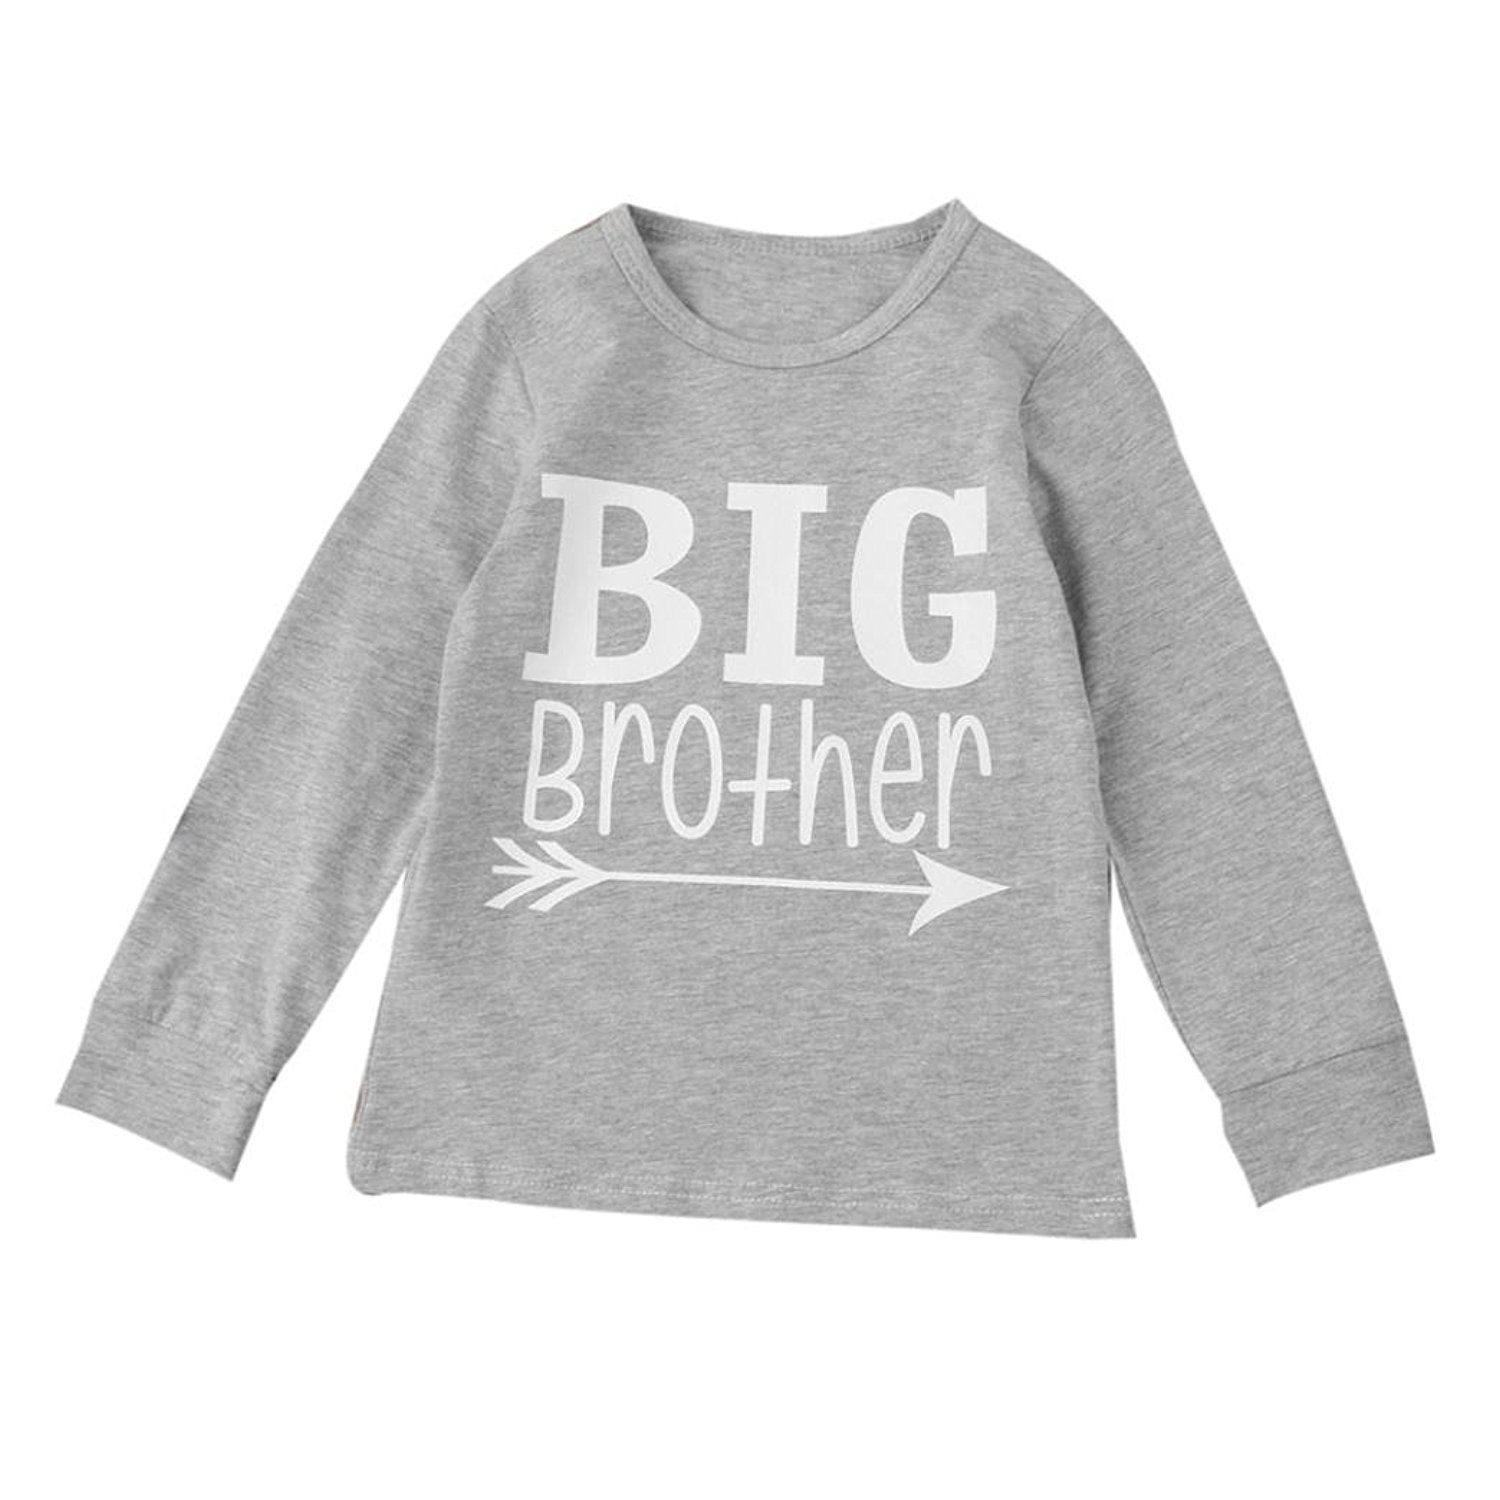 Webla Toddler Kids Baby Boy Long Sleeve Letter Big Brother T Shirt Tops Outfits Ages 2-6 Years